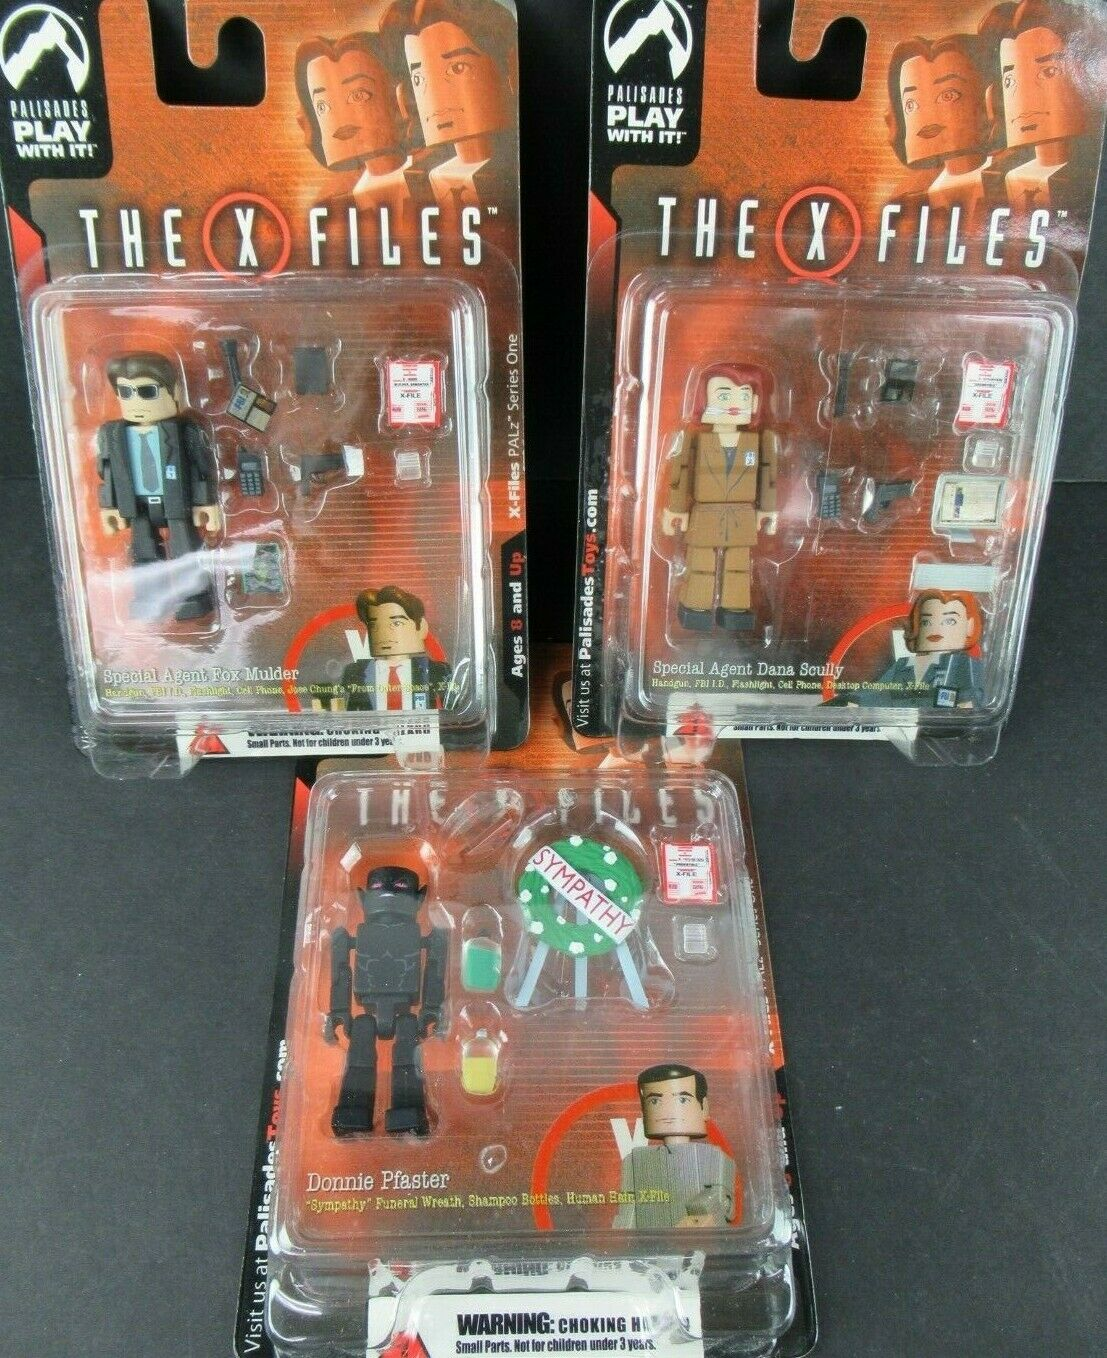 PALISADES XFILES PALZ SERIES I SCULLY, MULDER, PFASTER 2005 nuovo ON autoDS